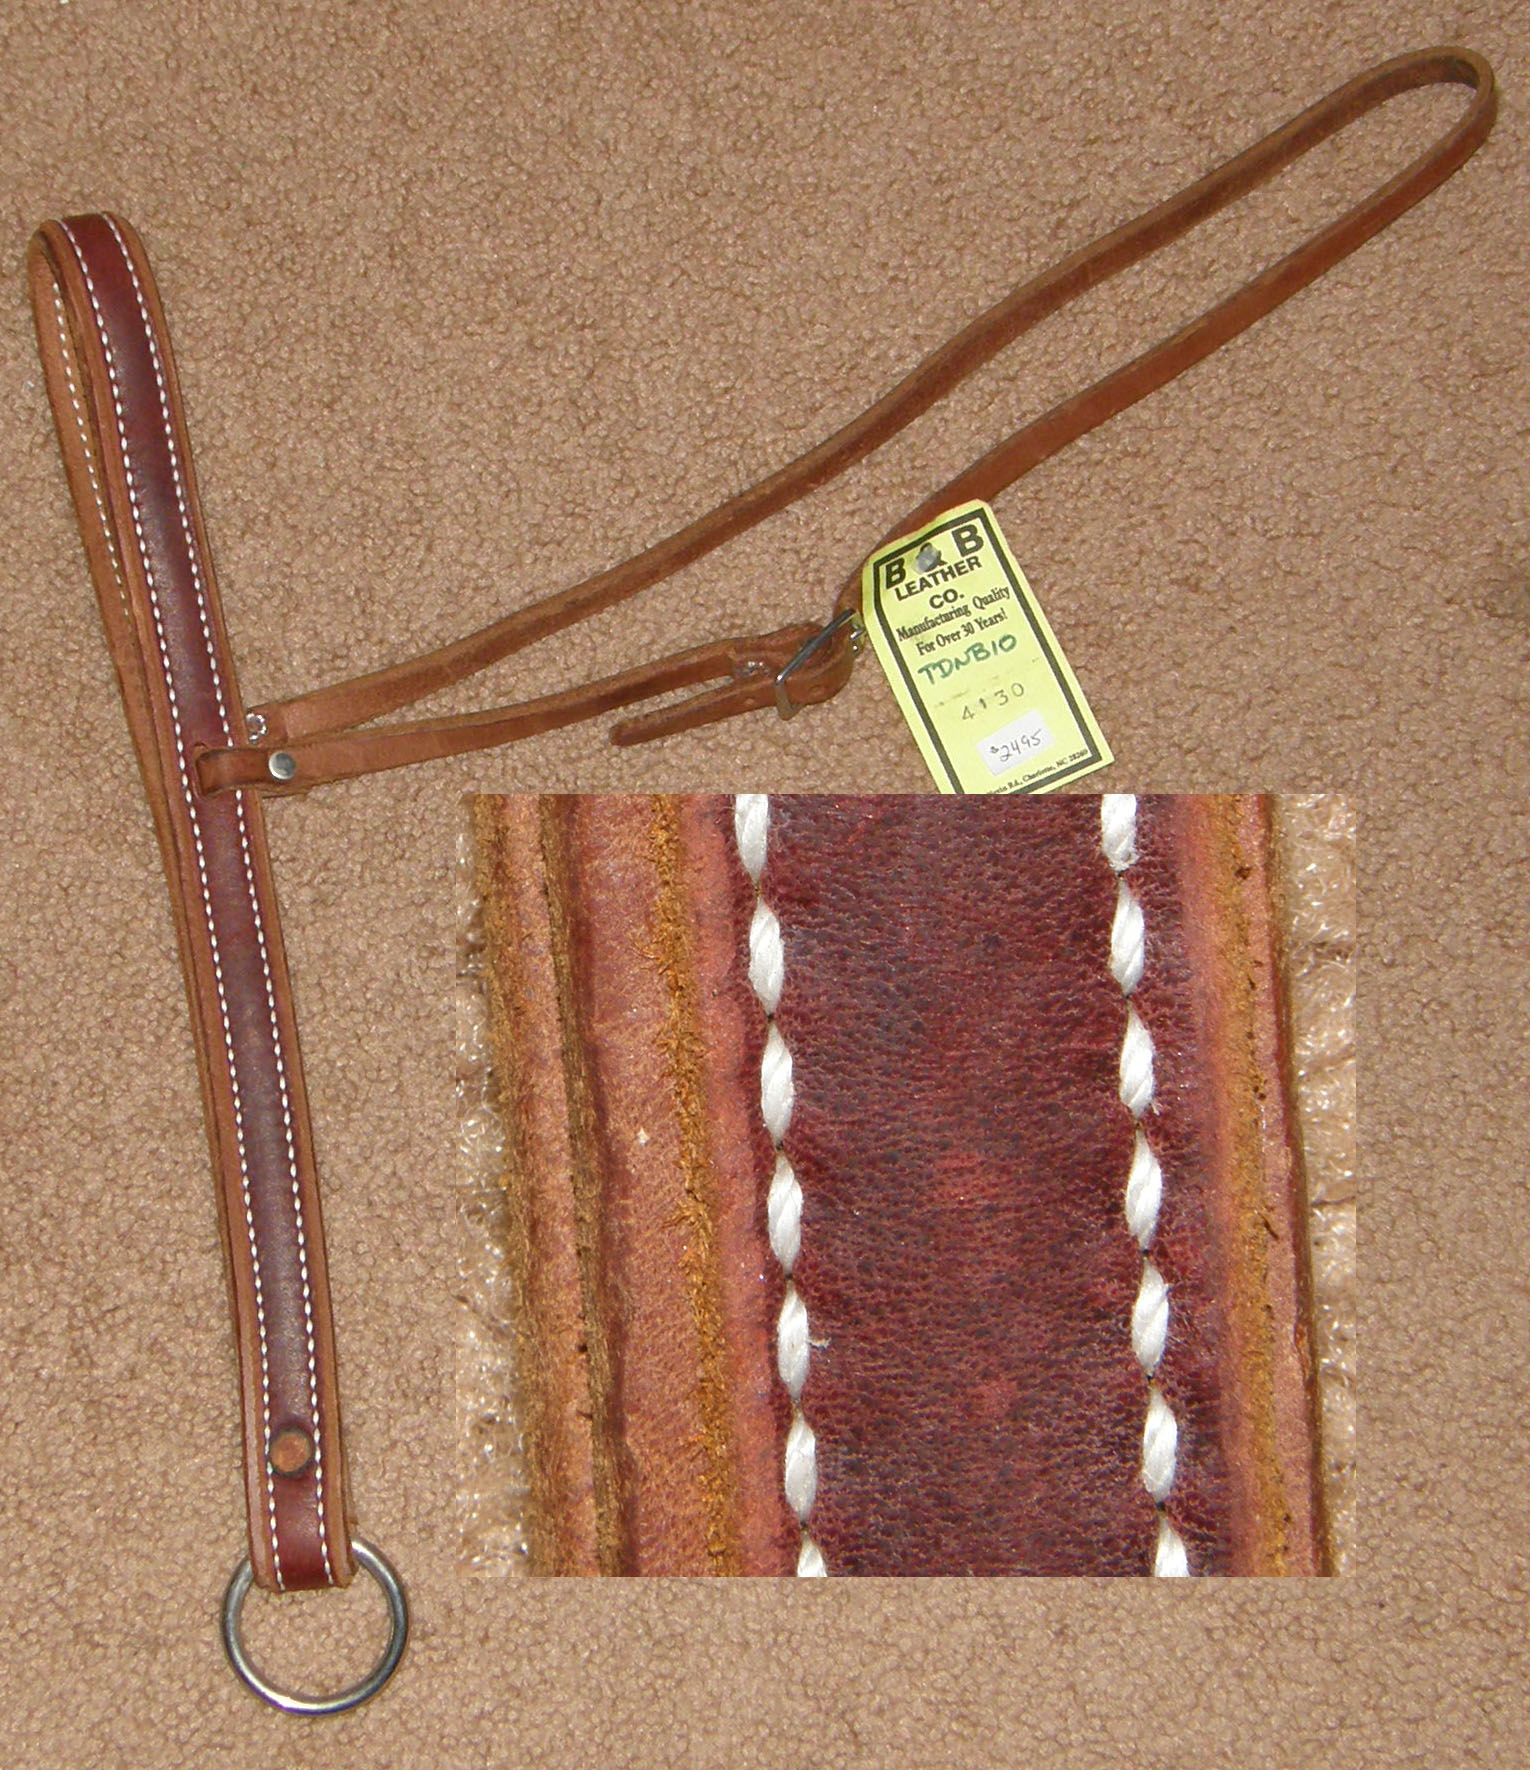 B&B Leather Harness Leather Tie Down Noseband Latigo Leather Overlay Tiedown Noseband Roper Noseband Russet Brown Horse